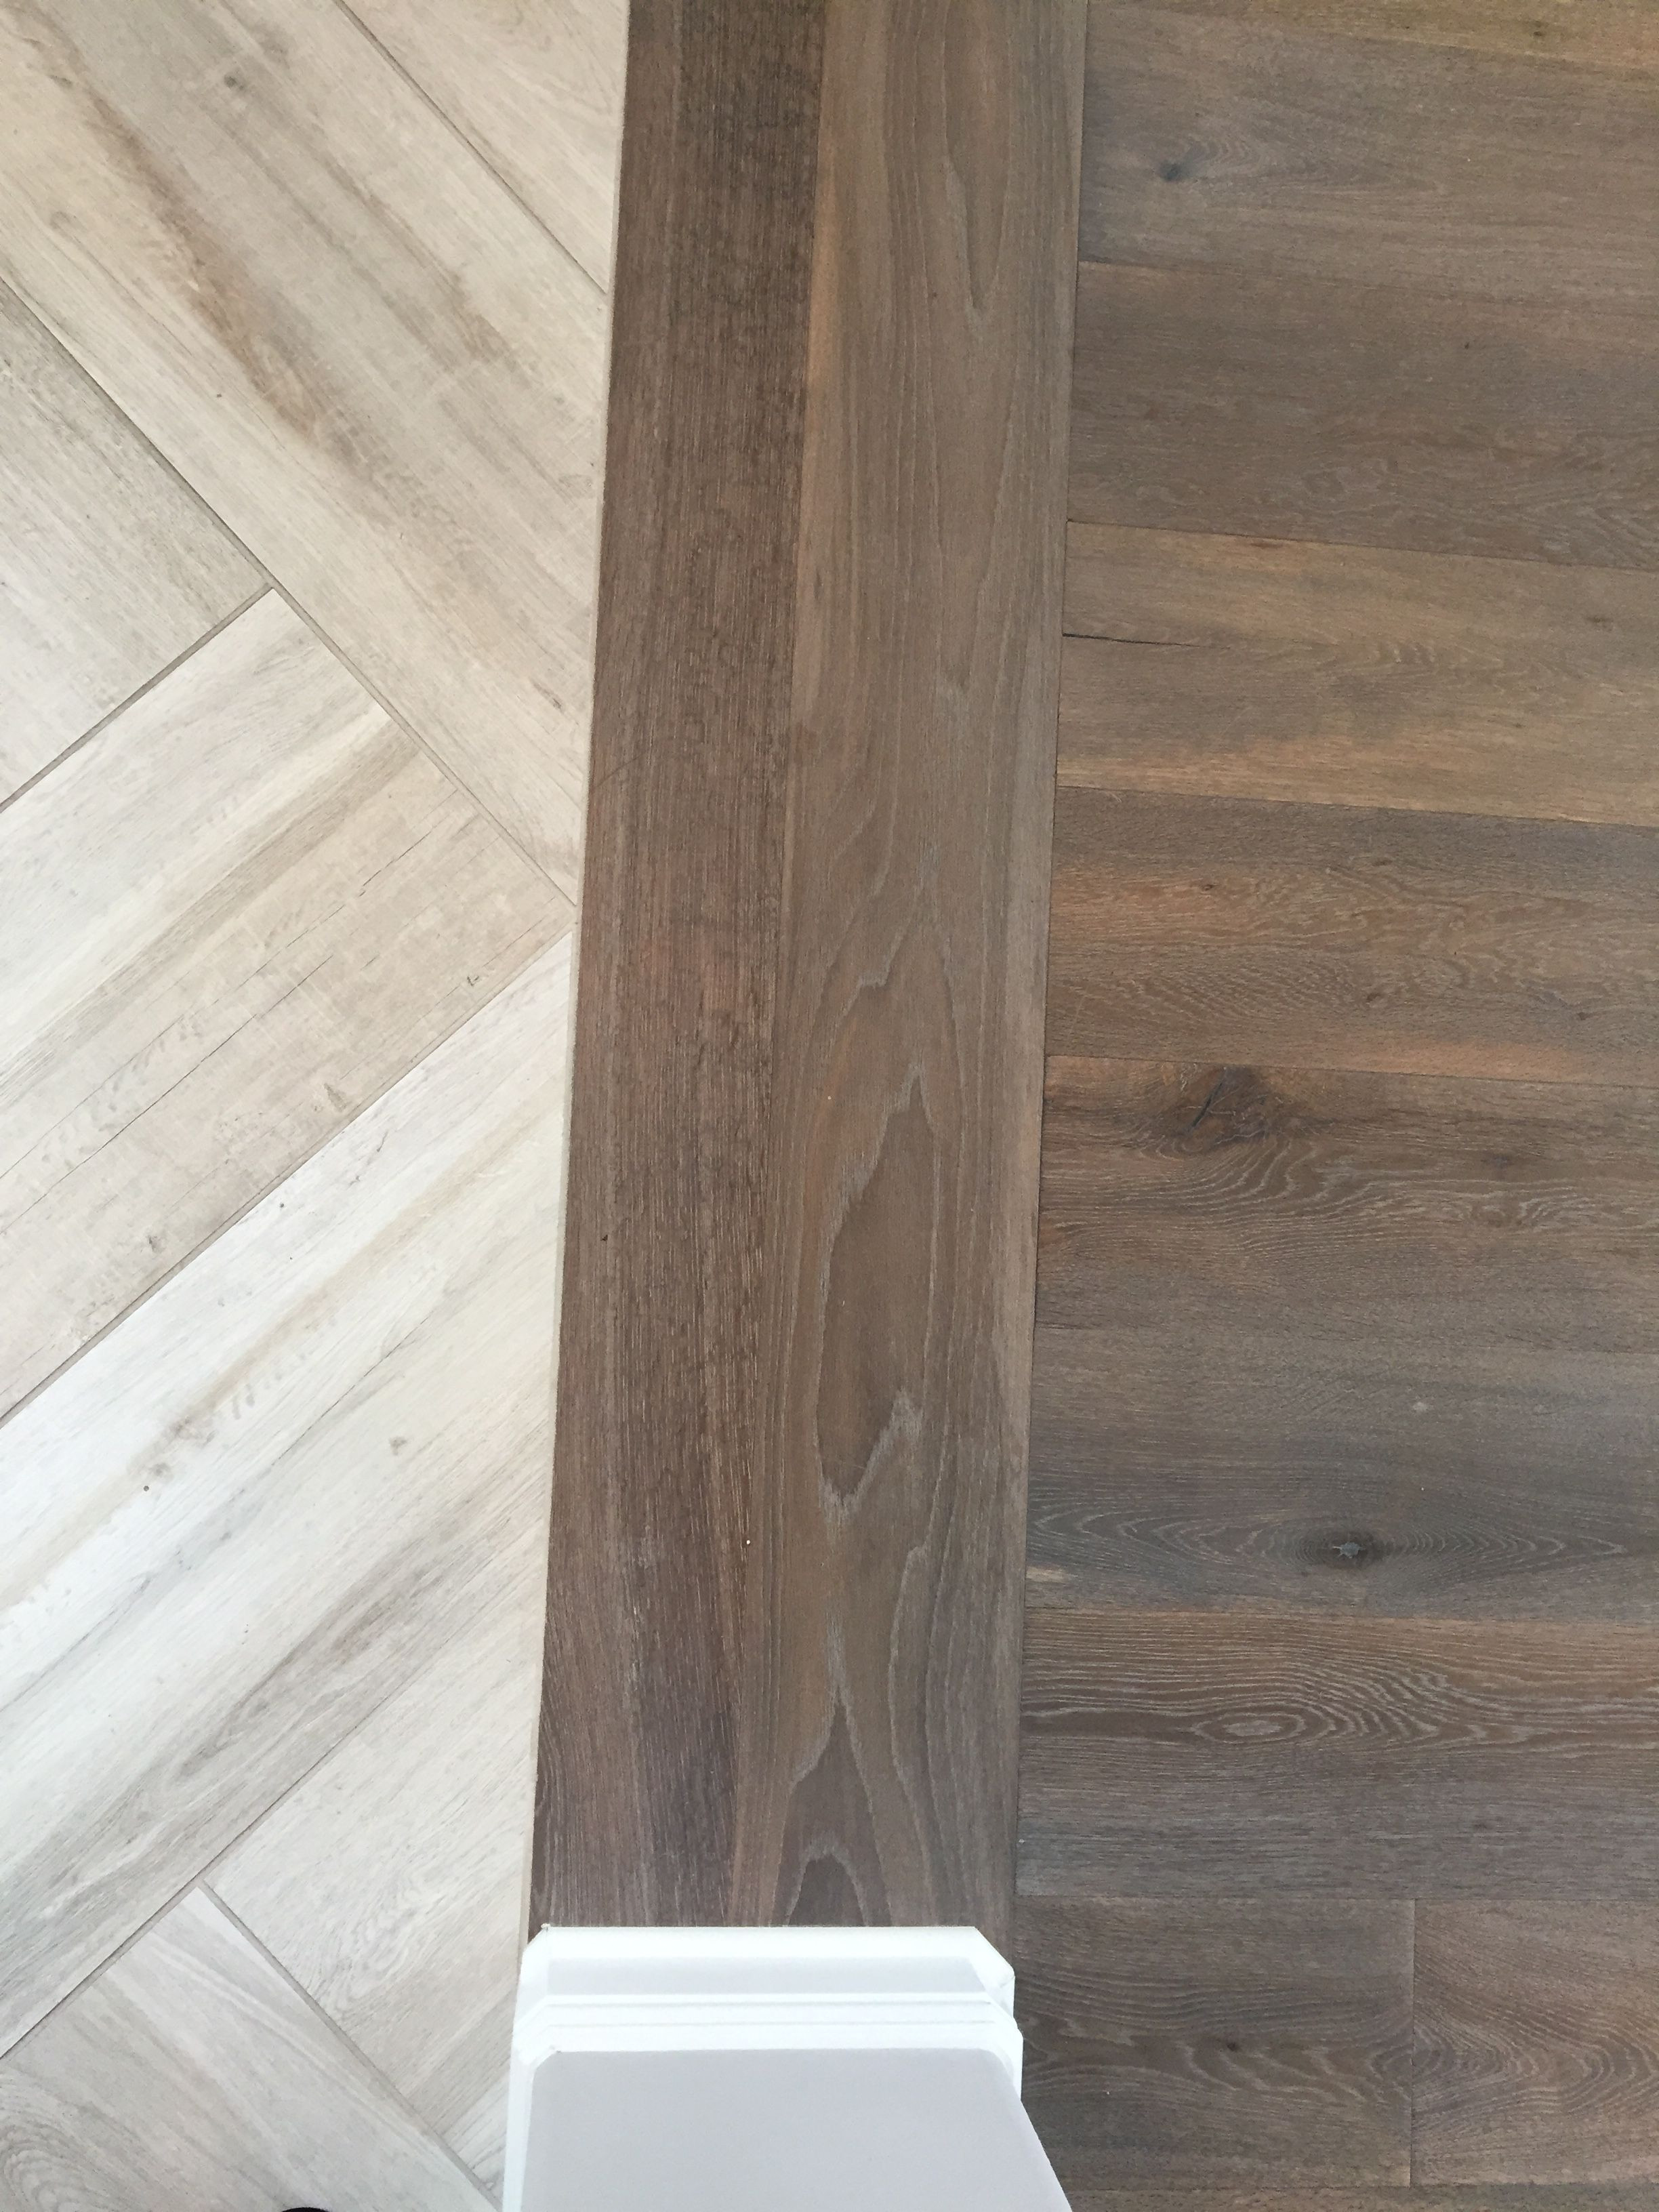 hardwood floor colors images of floor transition laminate to herringbone tile pattern kitchen intended for lighter color wood though floor transition laminate to herringbone tile pattern